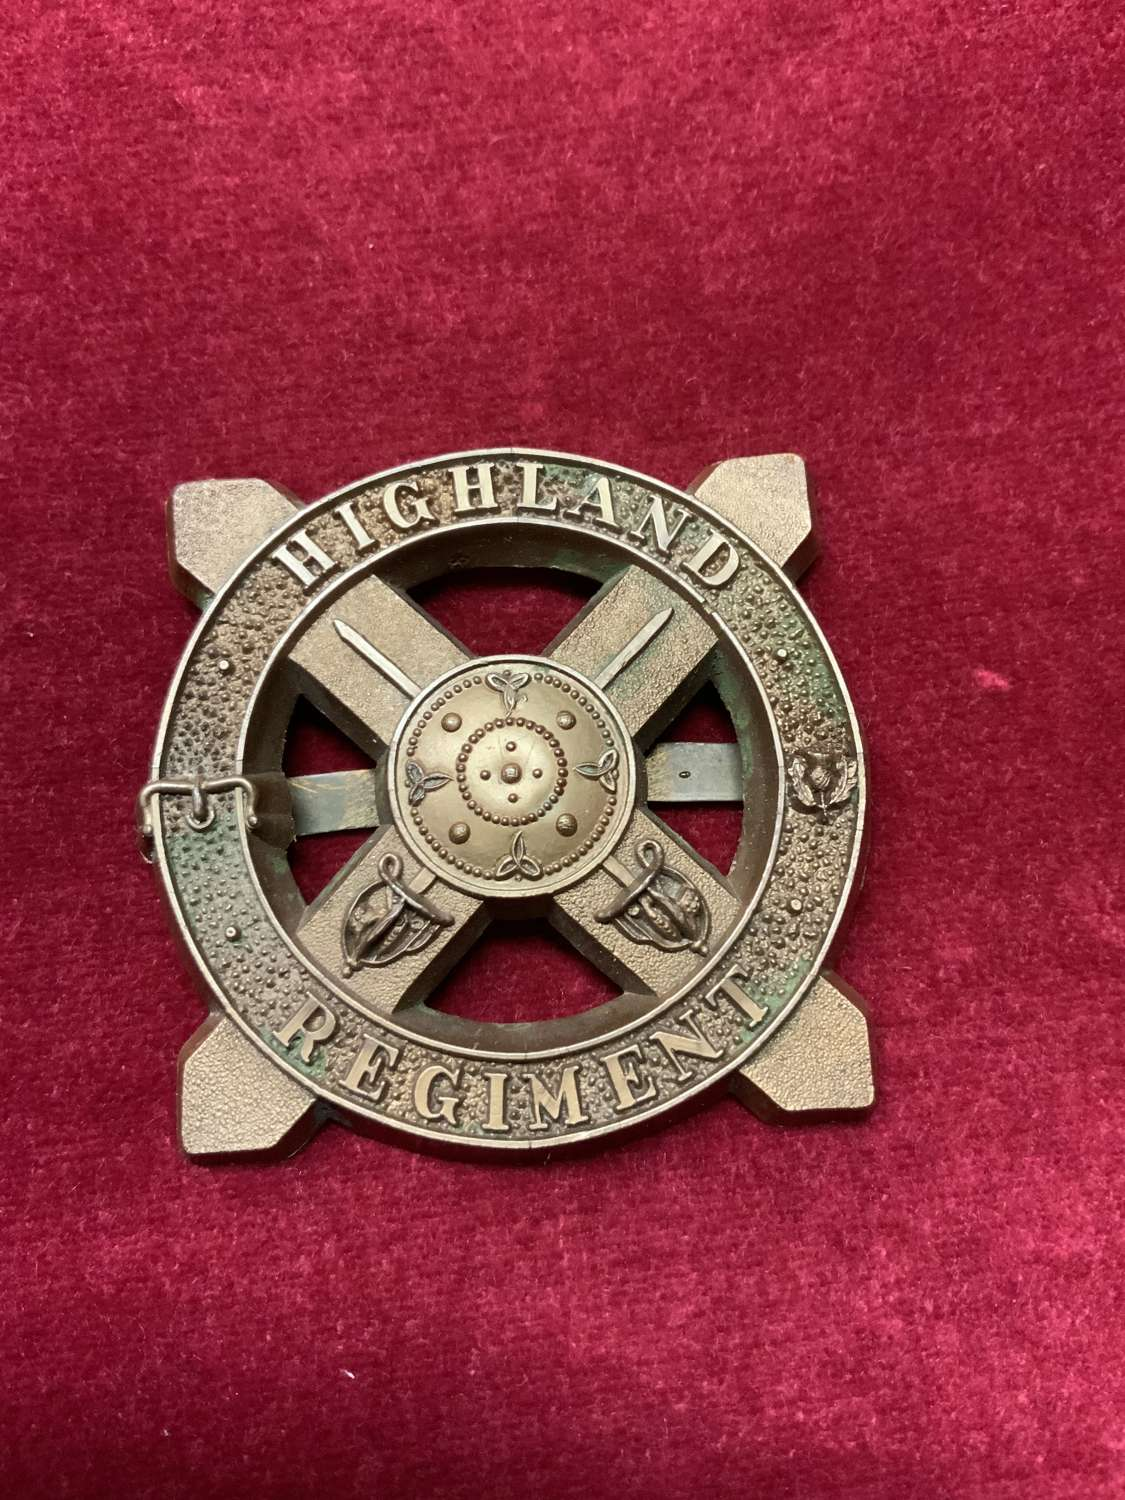 Highland Regiment, Plastic Bonnet Badge.